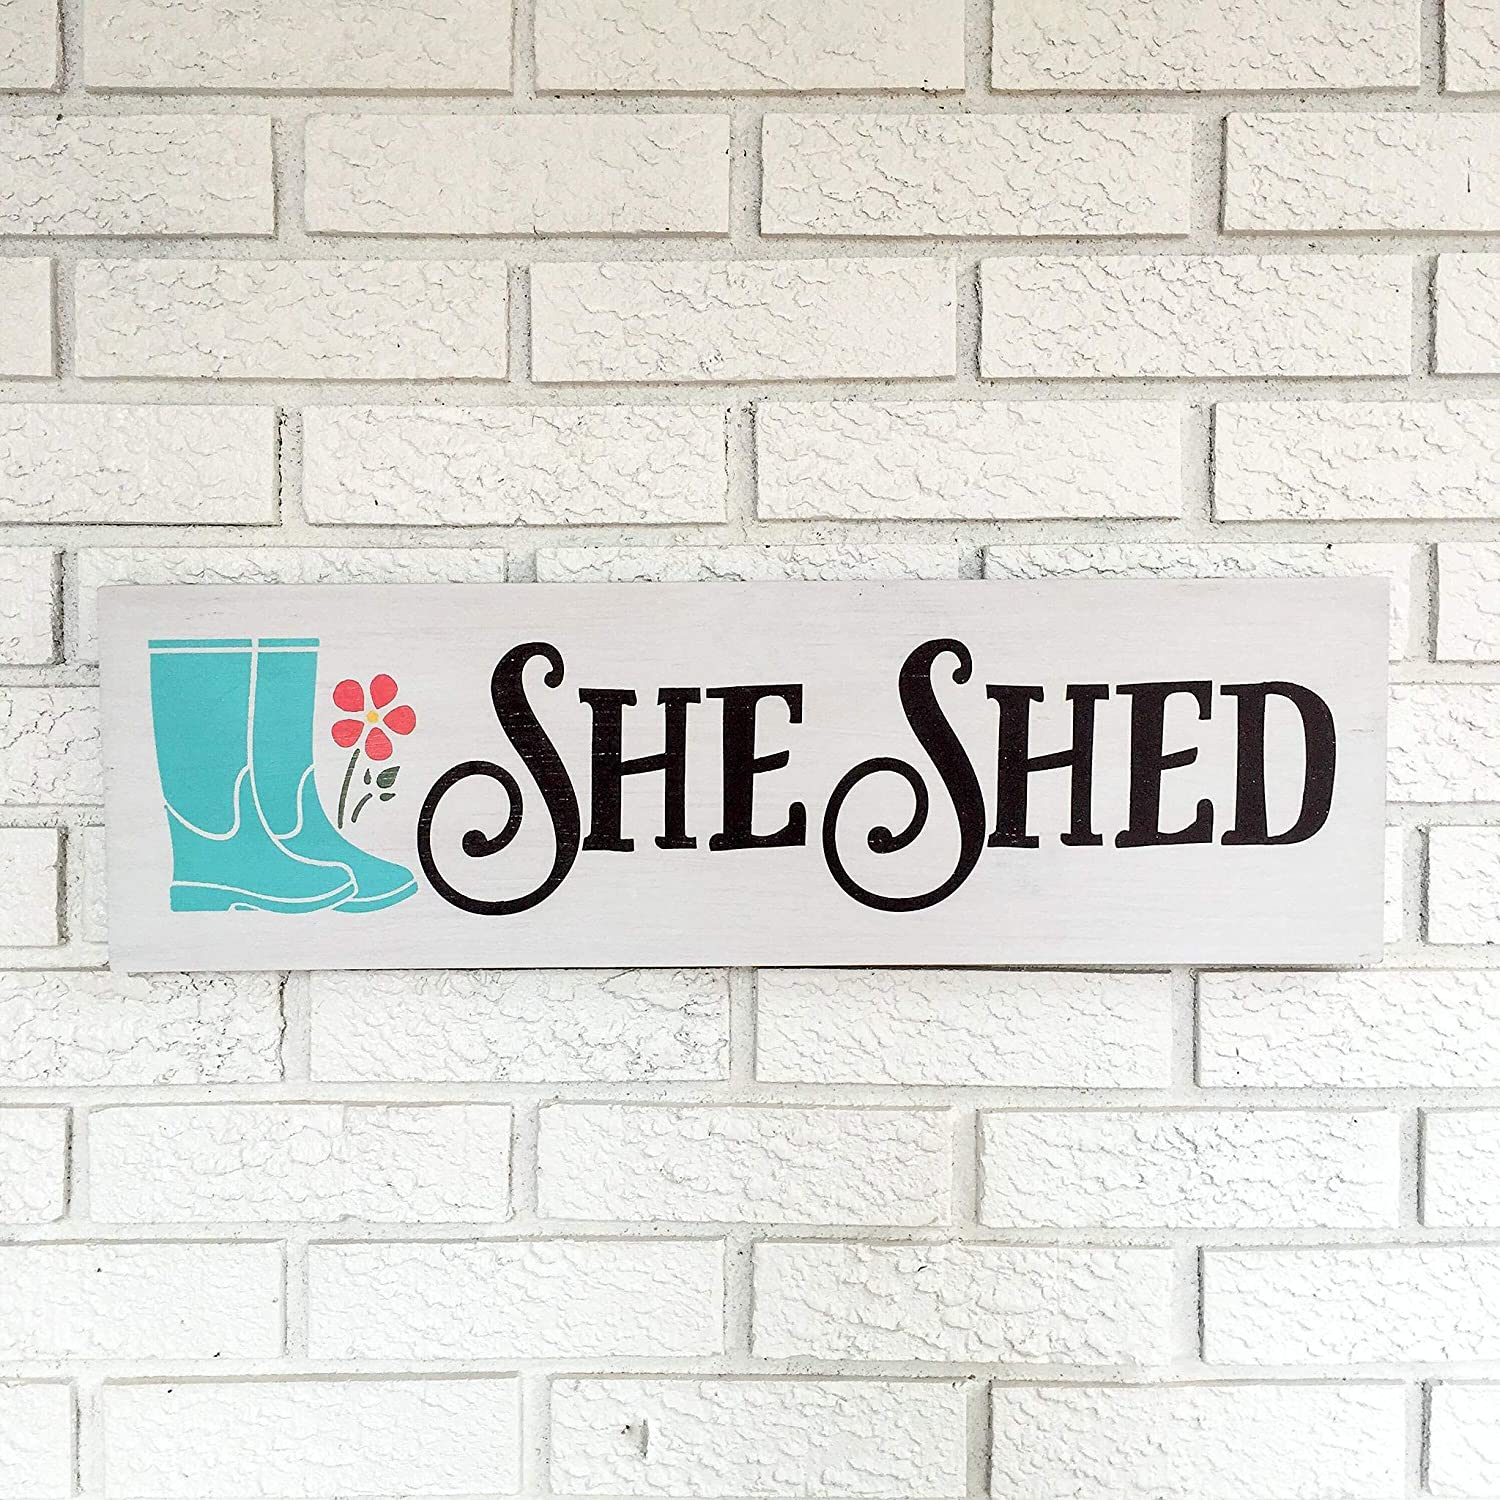 She Shed Sign, She Shed, She Shed Decor, Garden Shed Sign, She Cave, Woman Cave, Art Shed, Potting Shed, Shed Sign, She Shack Wooden Sign Wall Decor Garden Signs and Plaques